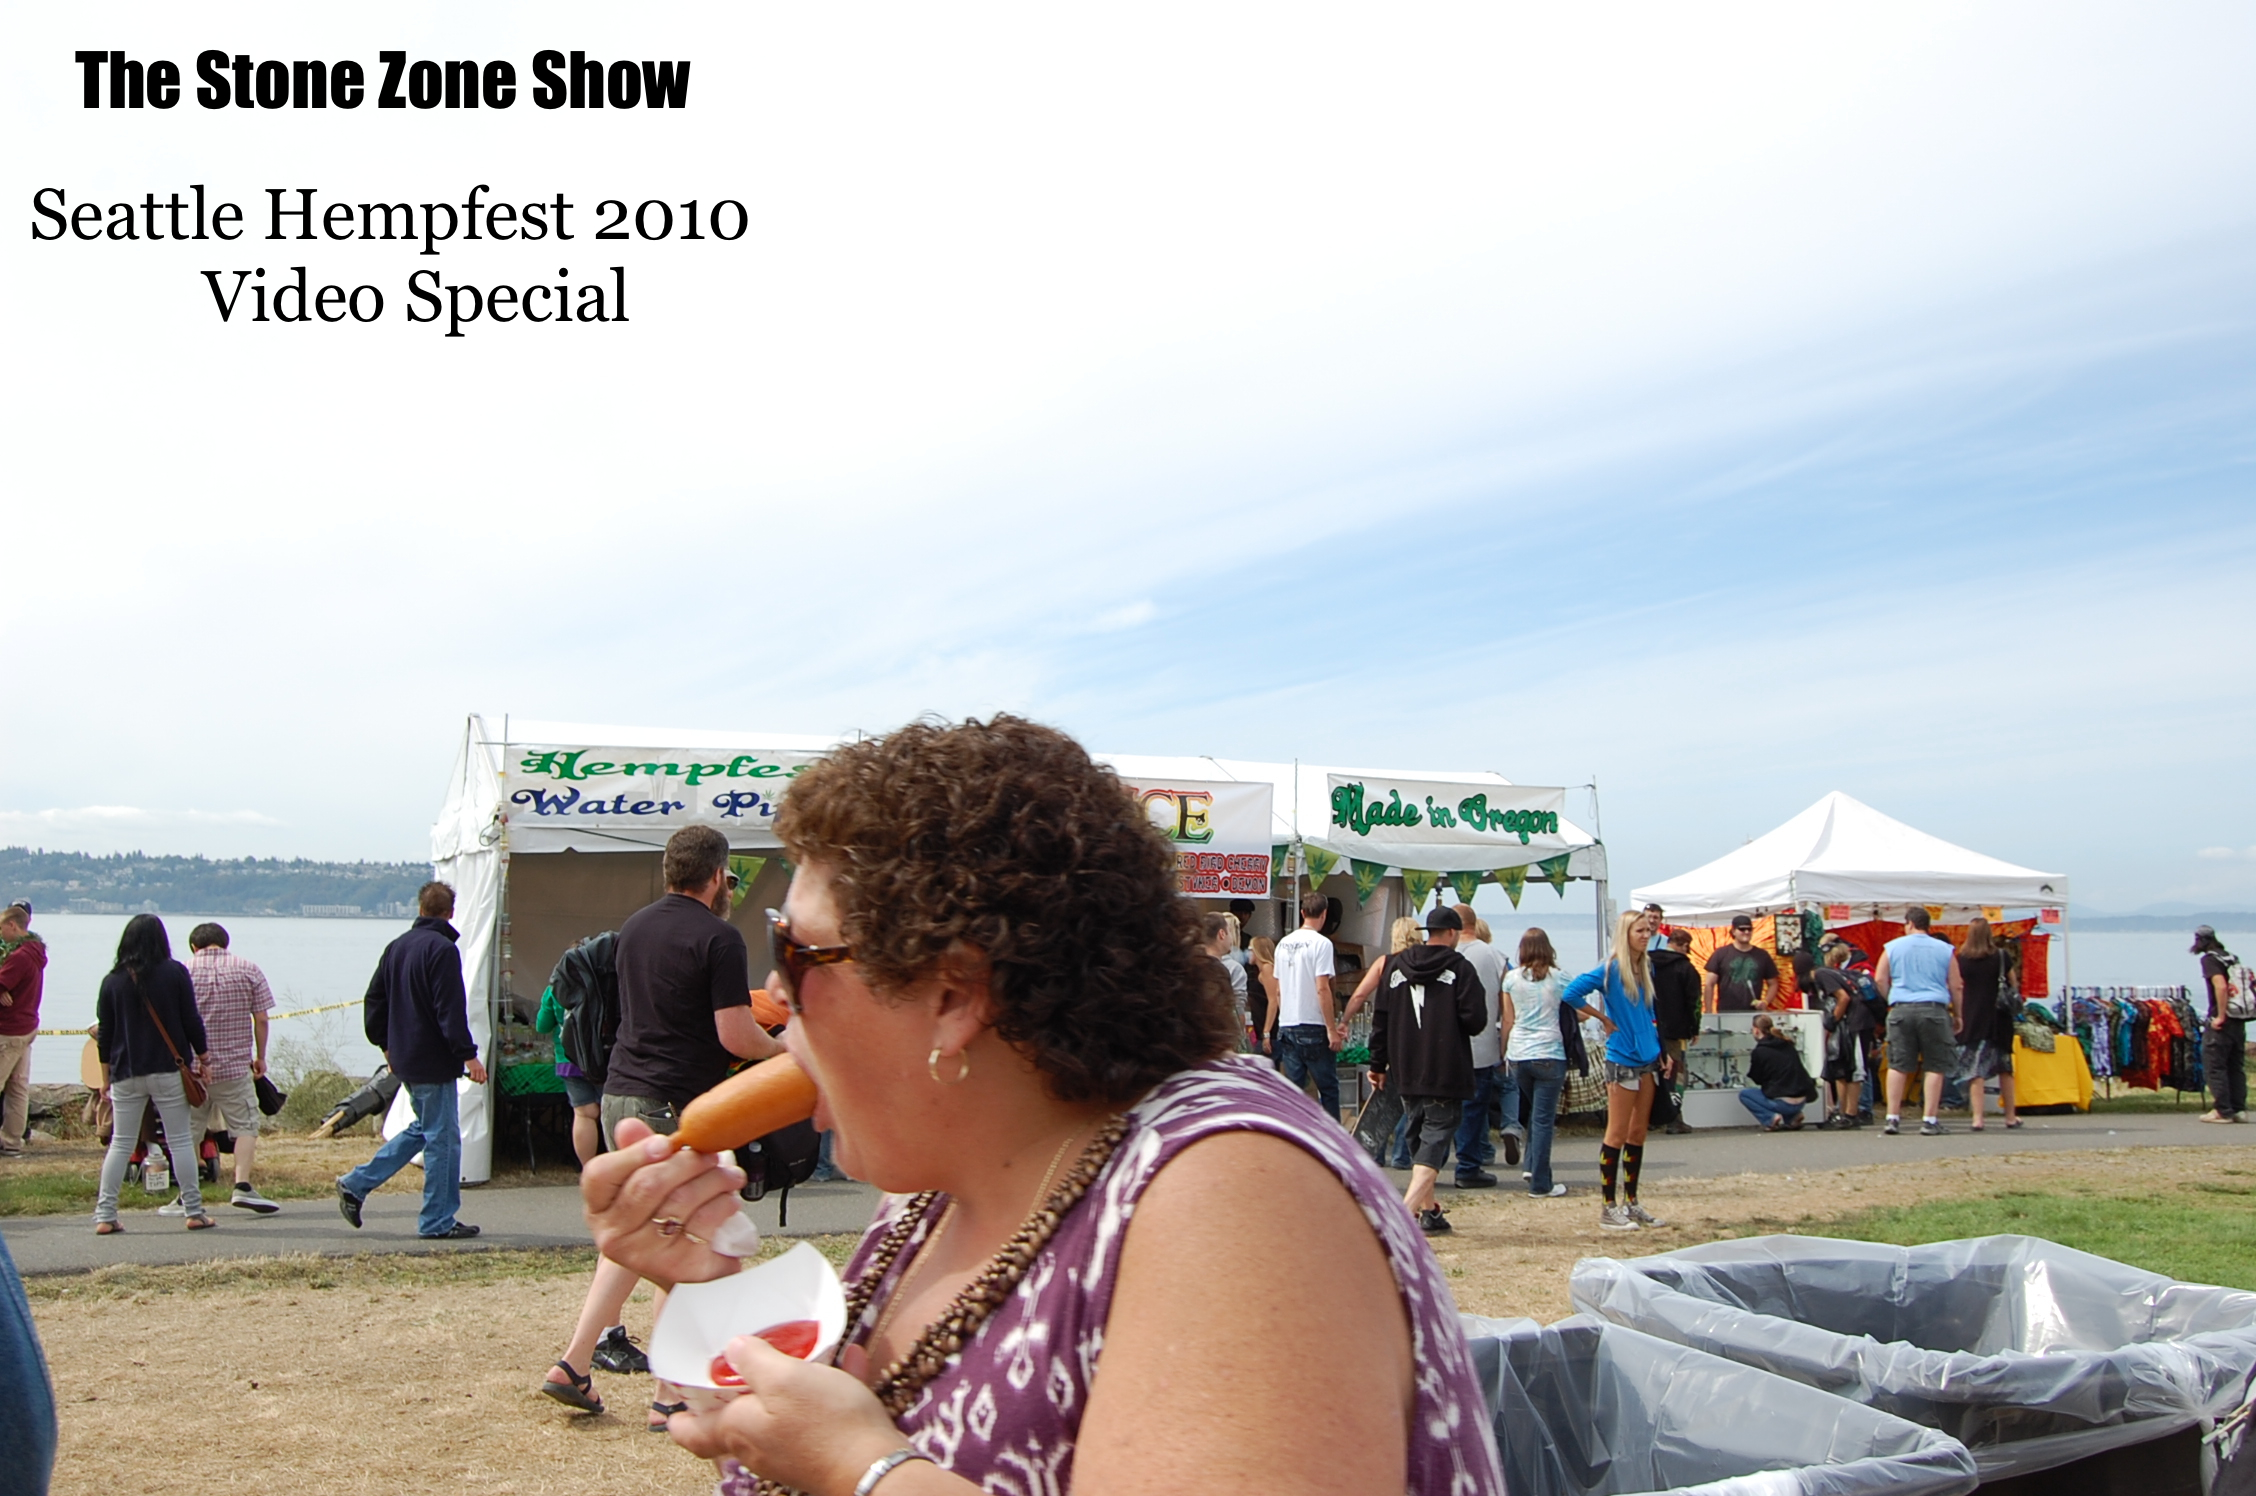 The Stone Zone Show Video Smokeout -2010 Seattle Hempfes -